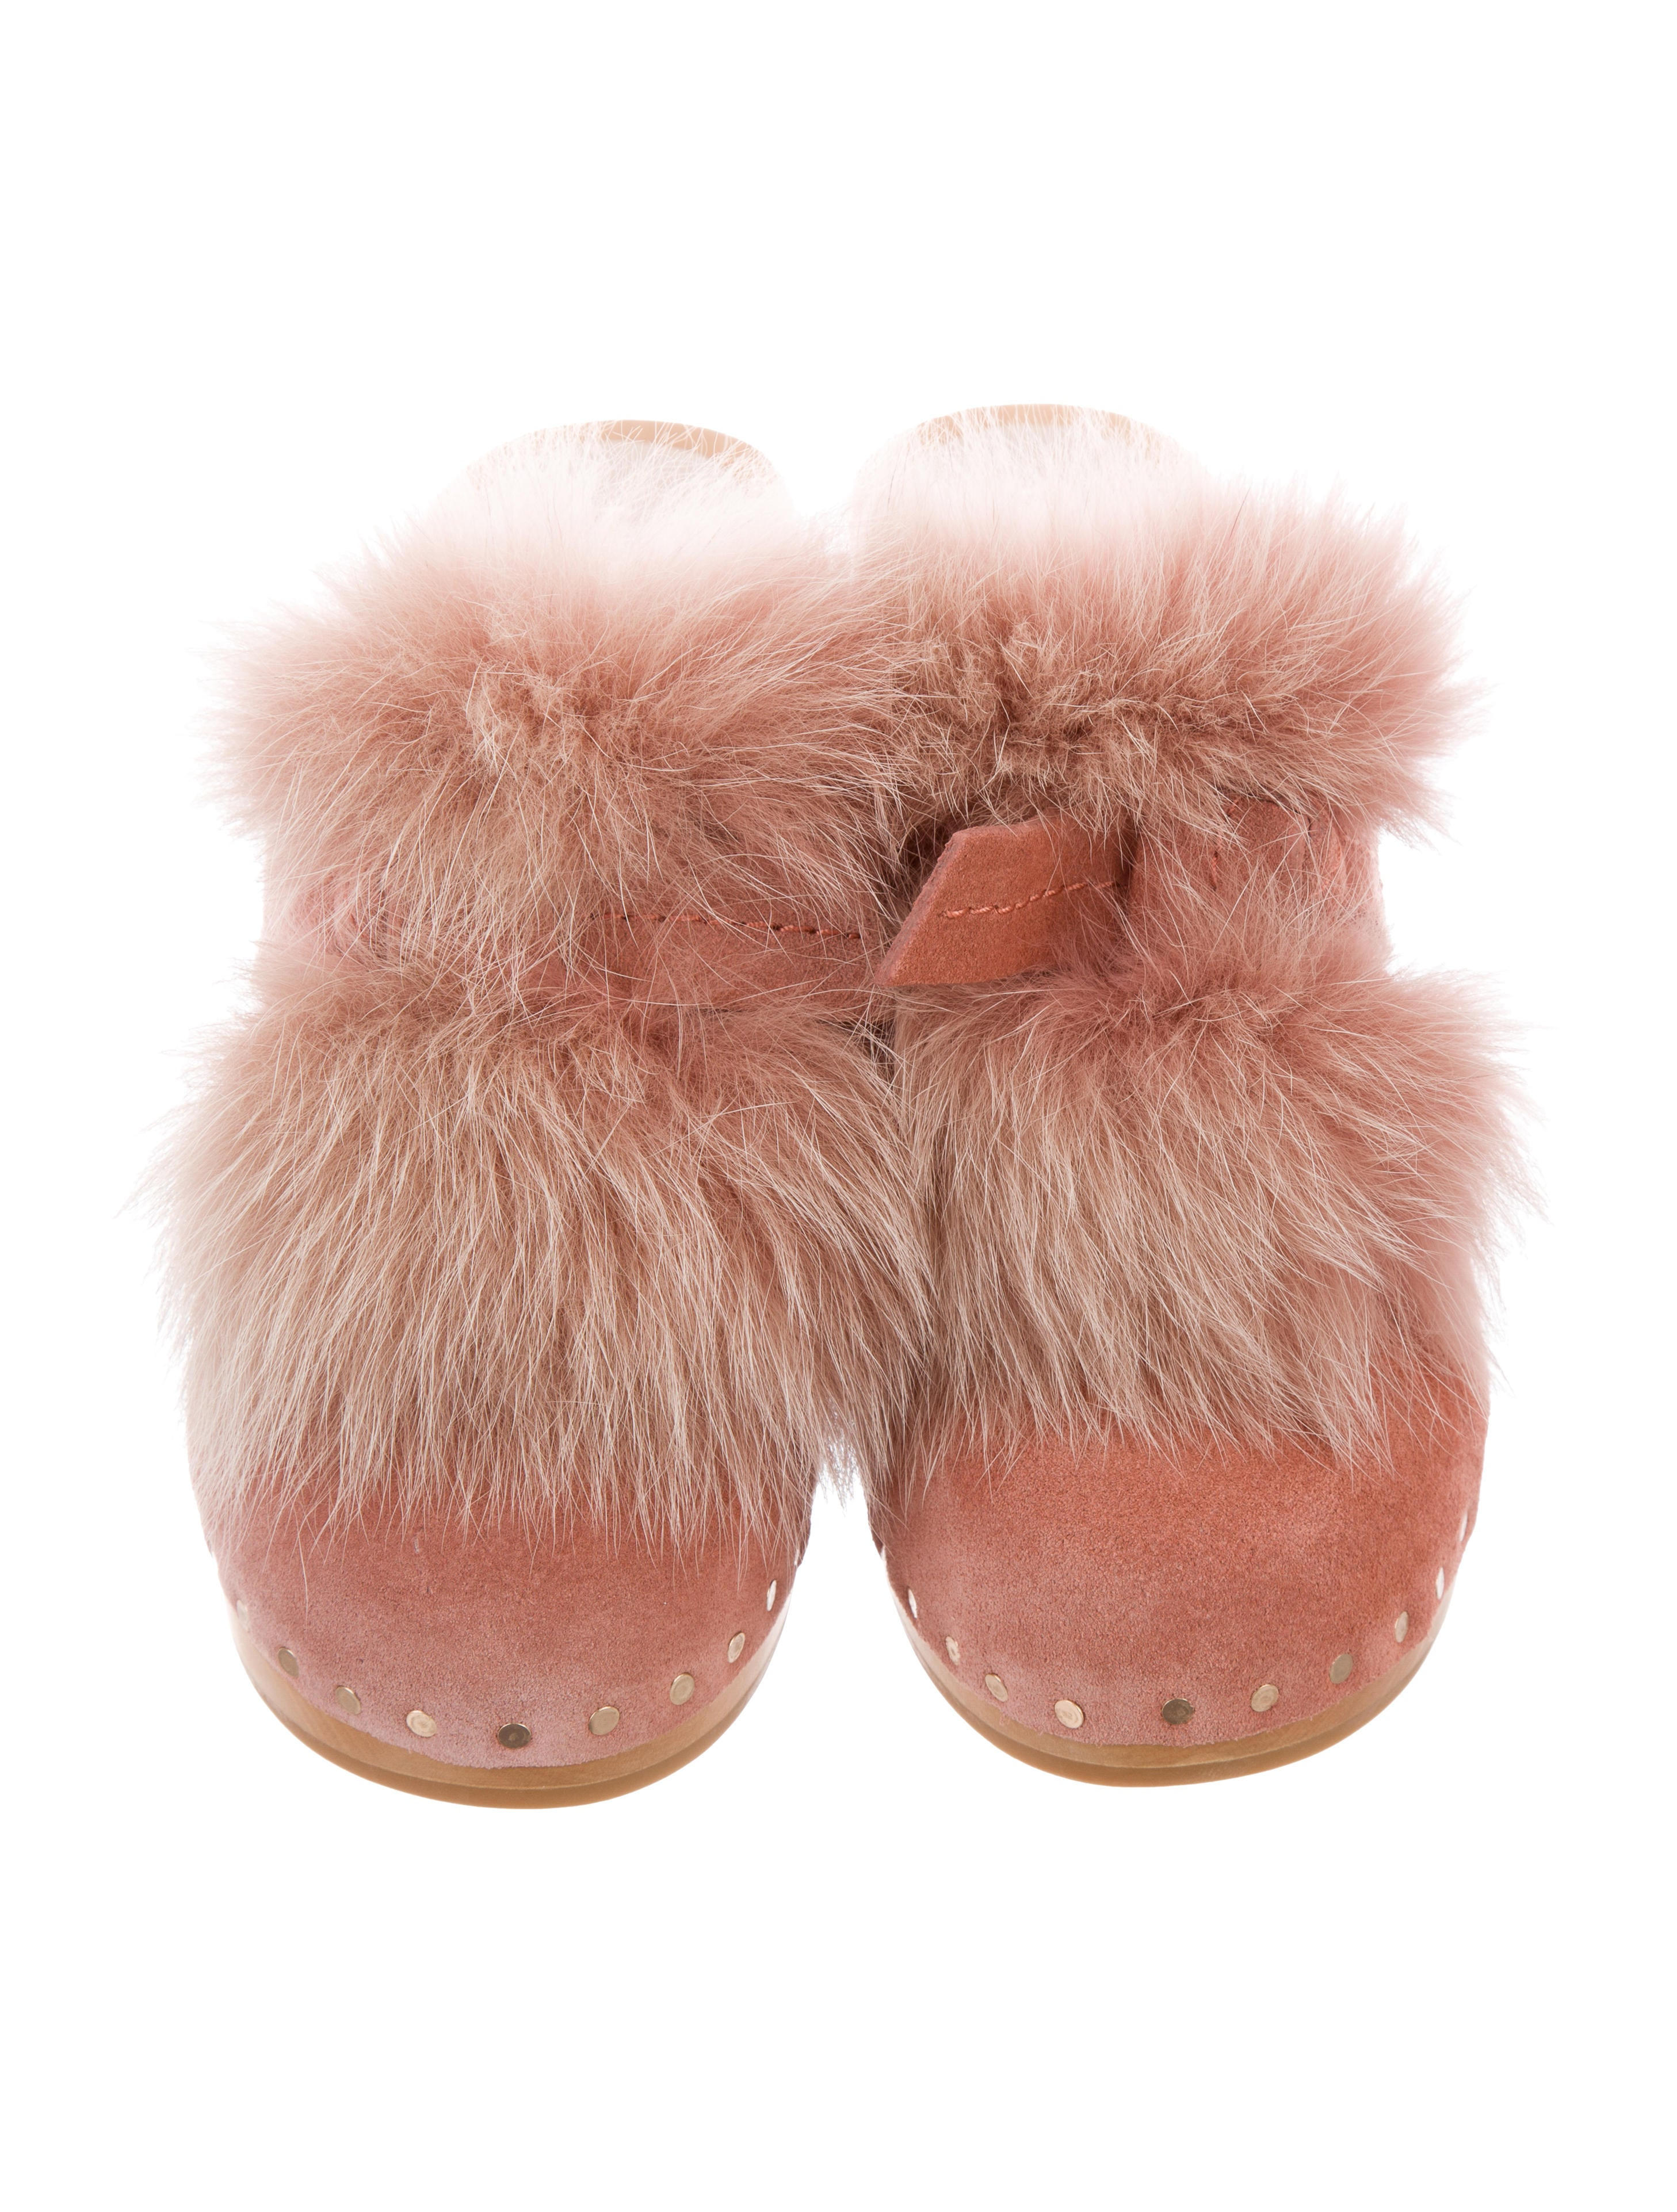 pre order for sale outlet comfortable Loeffler Randall 2017 Phillips Fox Fur-Trimmed Clogs w/ Tags new arrival online bbhKUTeN